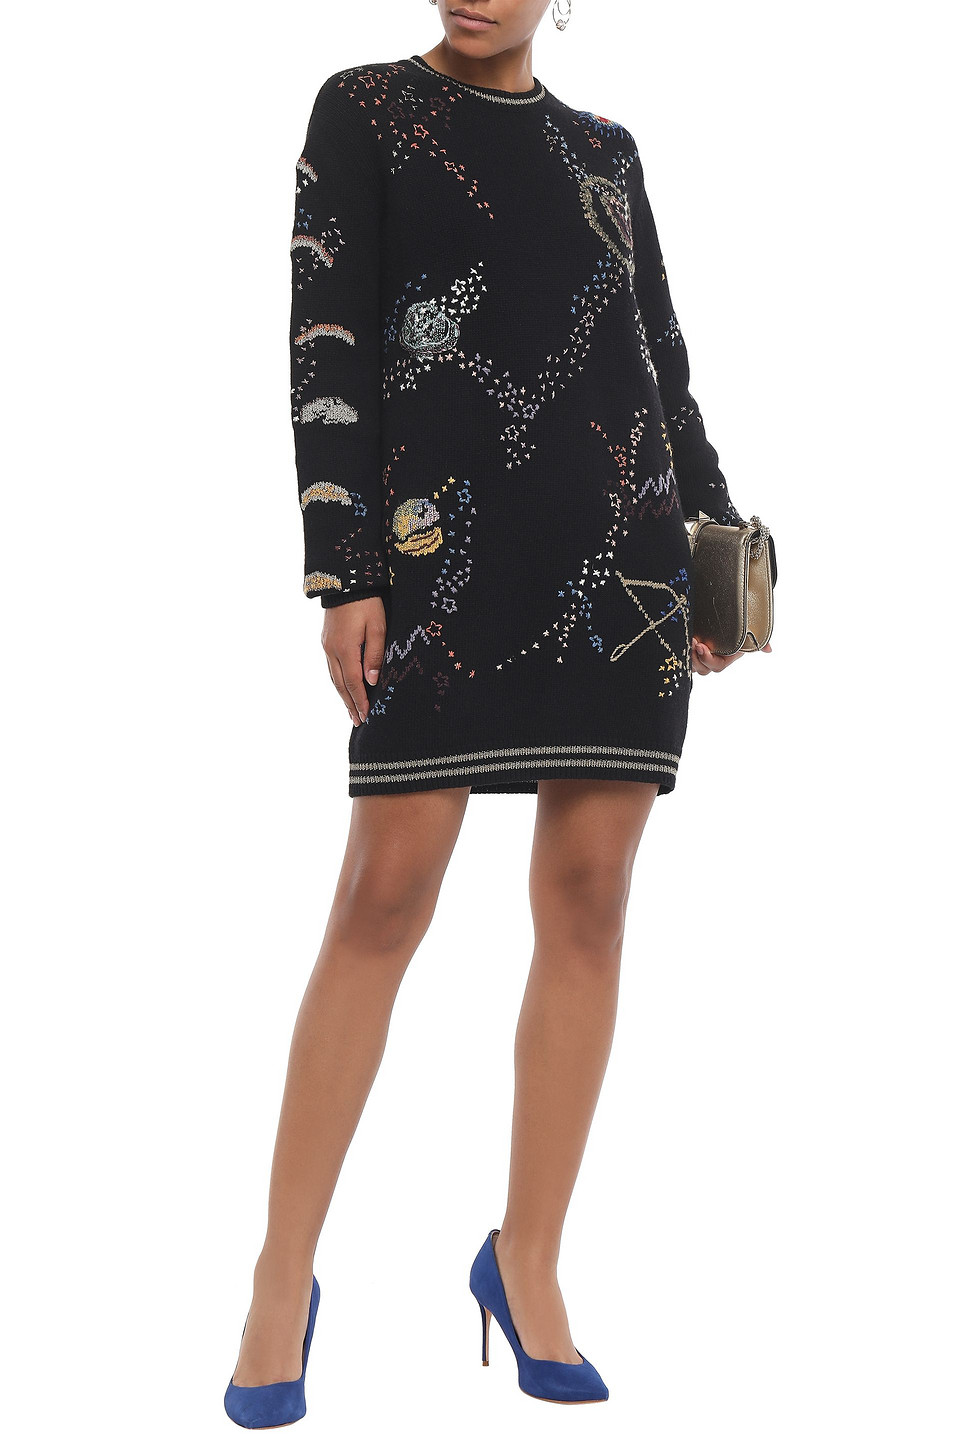 VALENTINO | Valentino Woman Embroidered Wool And Cashmere-blend Mini Dress Black | Clouty